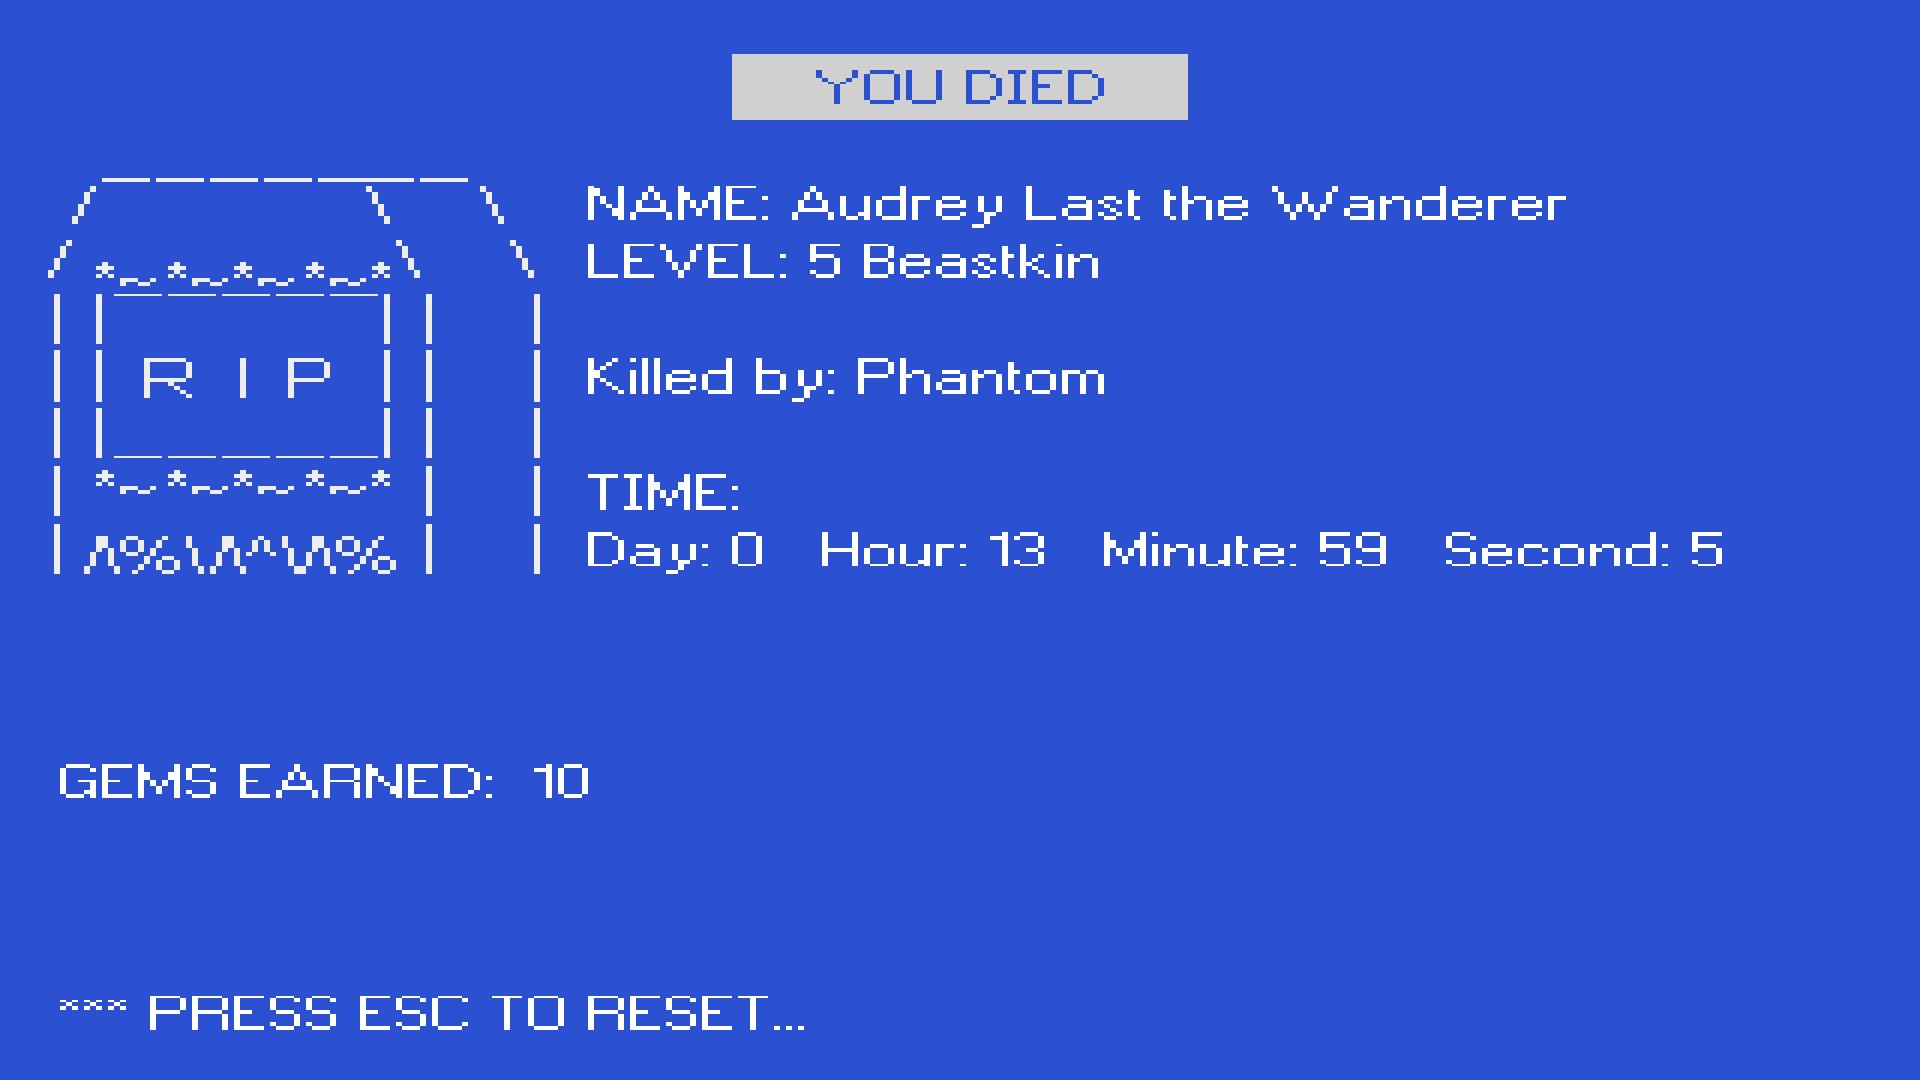 Kingsway's game over screen in the style of the blue screen of death.